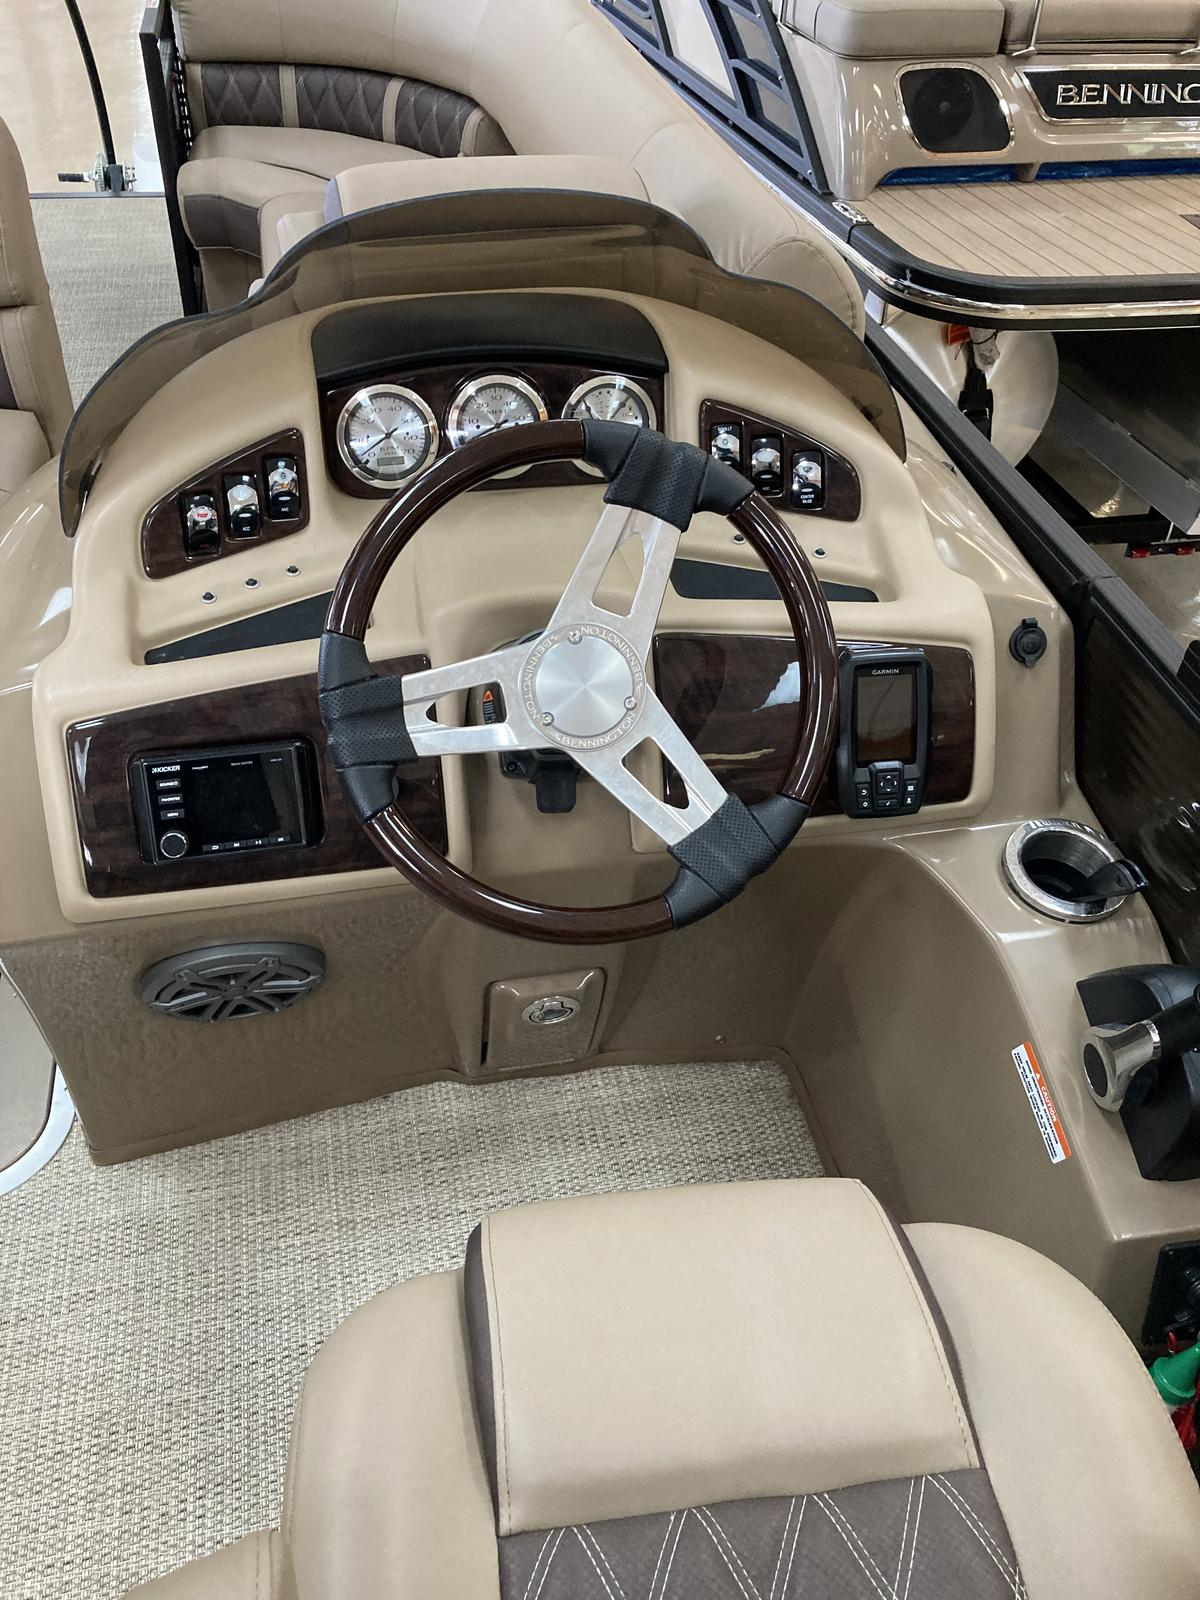 2018 Bennington boat for sale, model of the boat is 23 GSRC & Image # 3 of 4